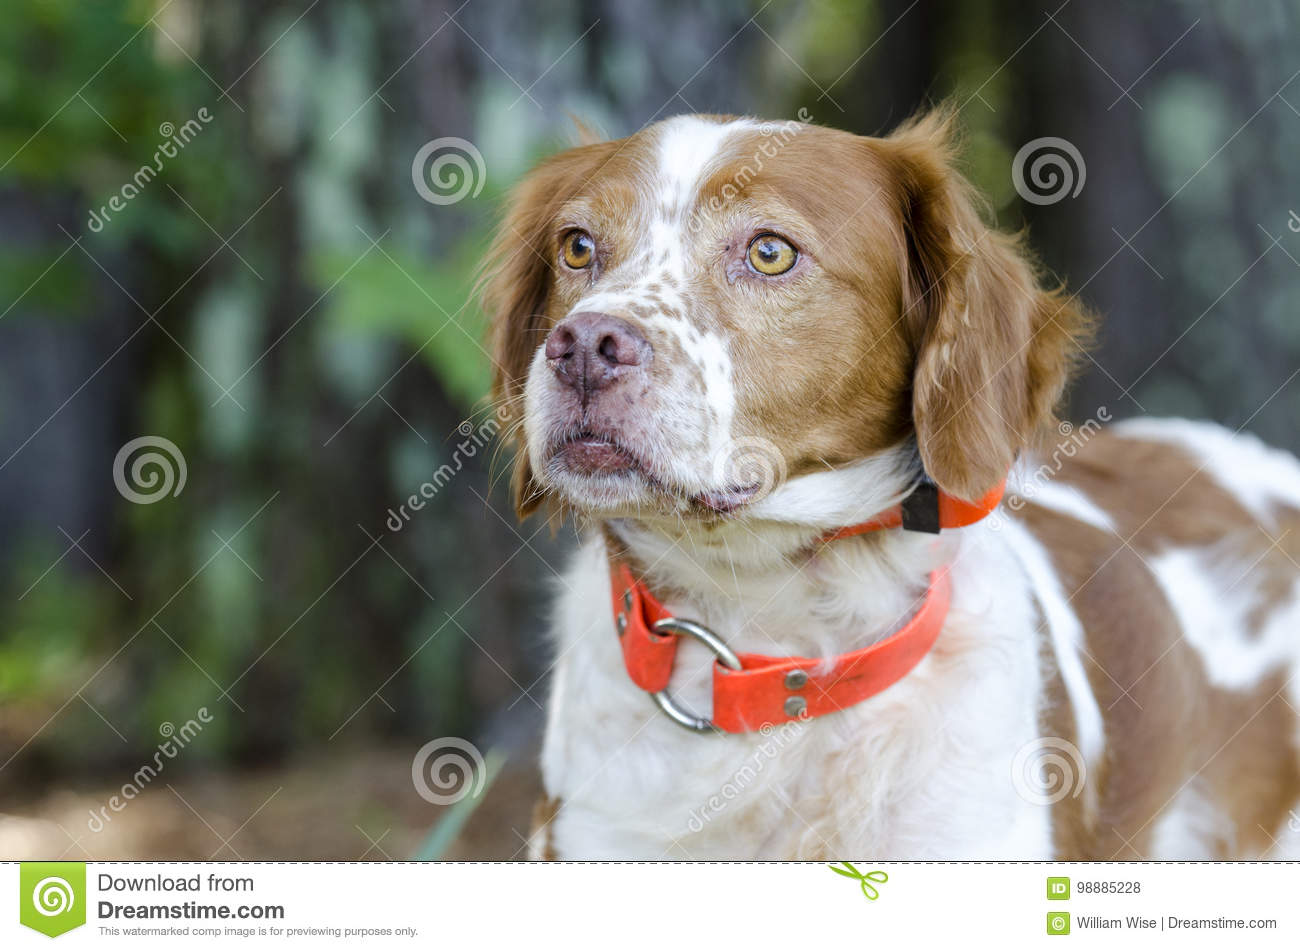 Brittany Spaniel hunting dog with safety orange tracking collar